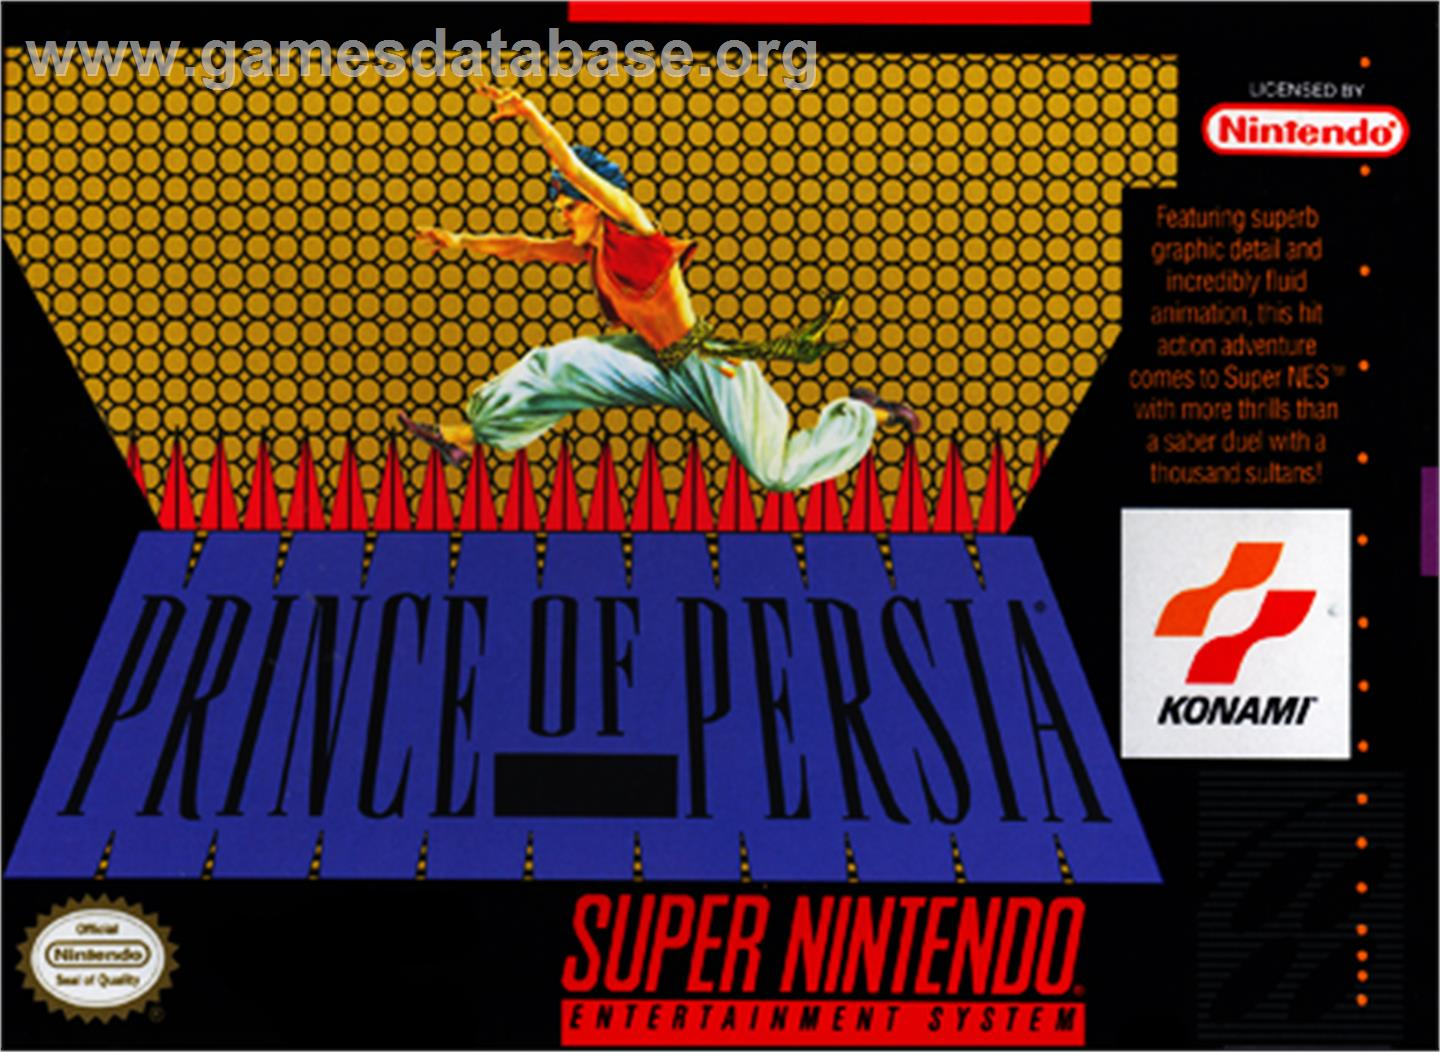 Prince of Persia - Nintendo SNES - Artwork - Box